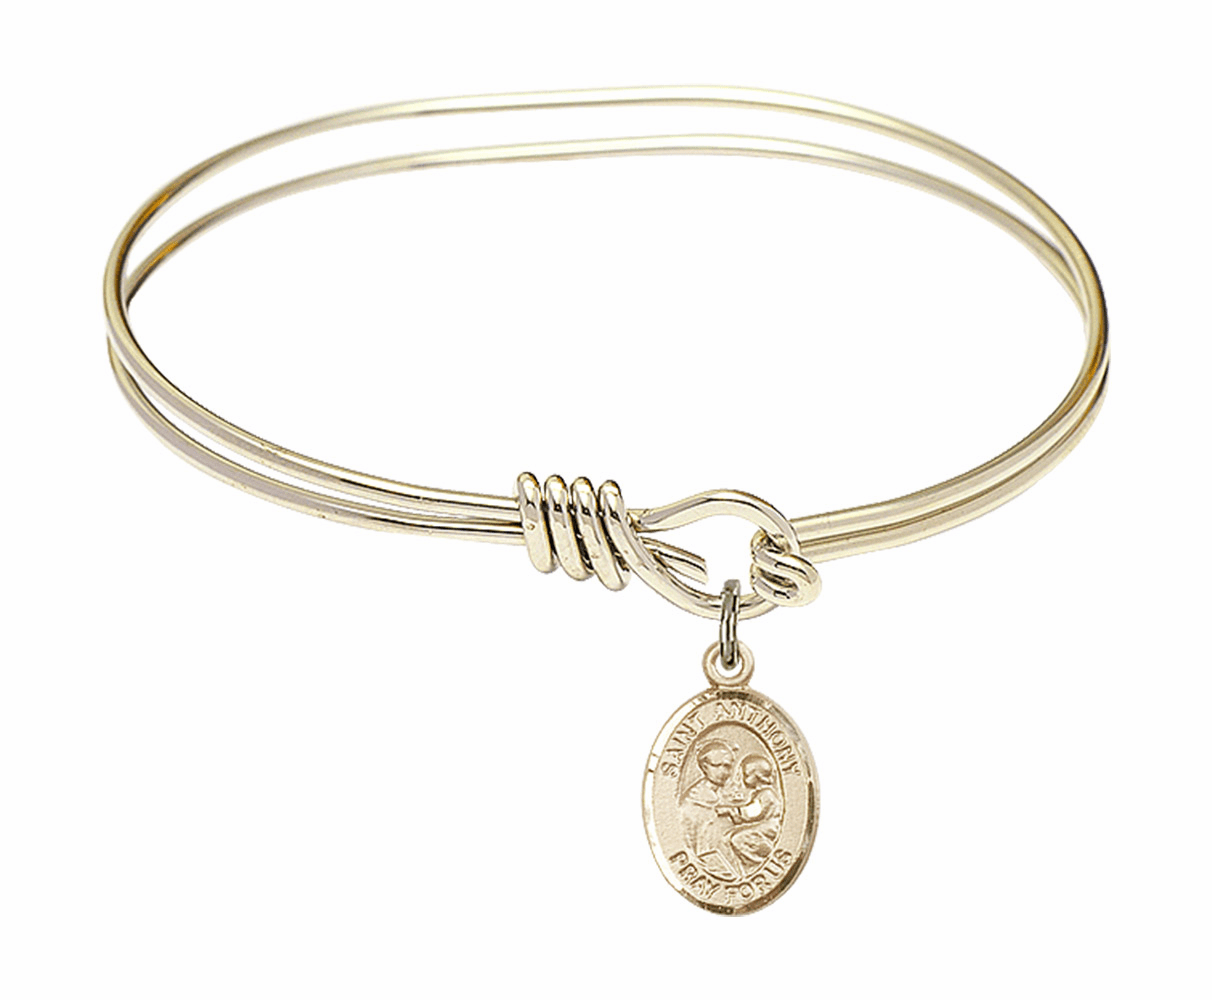 Round Loop St Anthony of Padua Bangle 14kt Gold-filled Charm Bracelet by Bliss